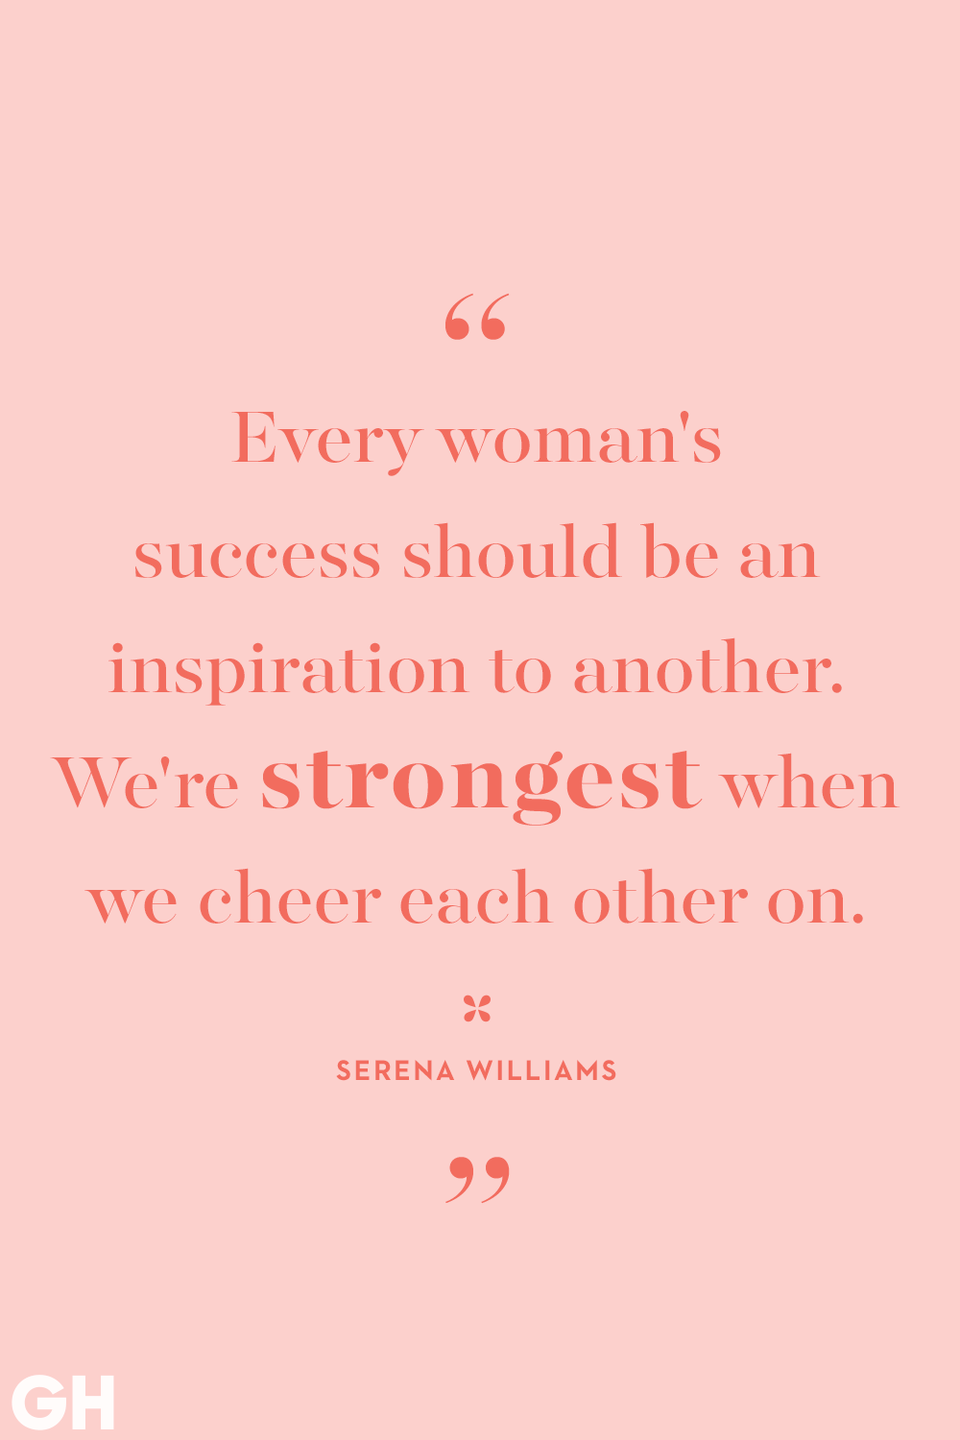 <p>Every woman's success should be an inspiration to another. We're strongest when we cheer each other on.</p>